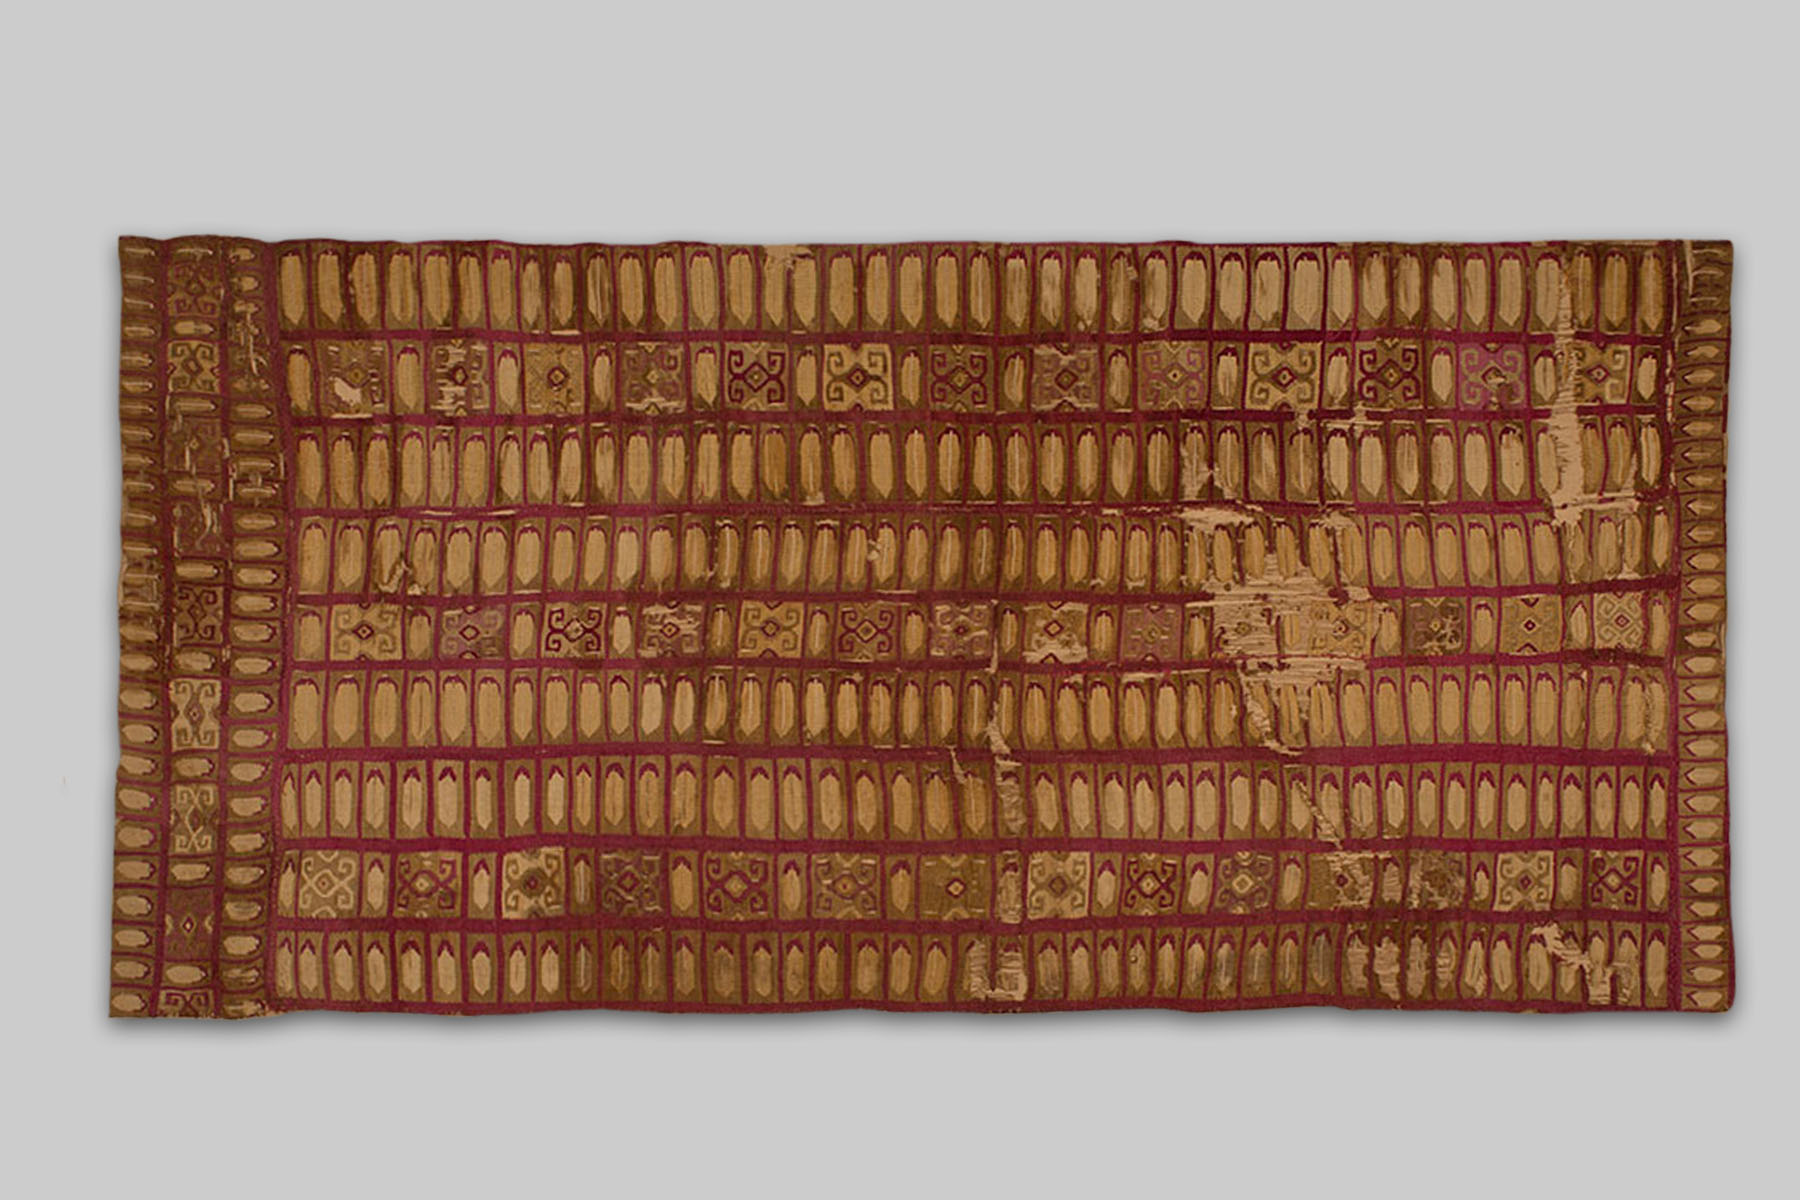 Tunic Panel (in Golden Color), Inca, 1400 AD